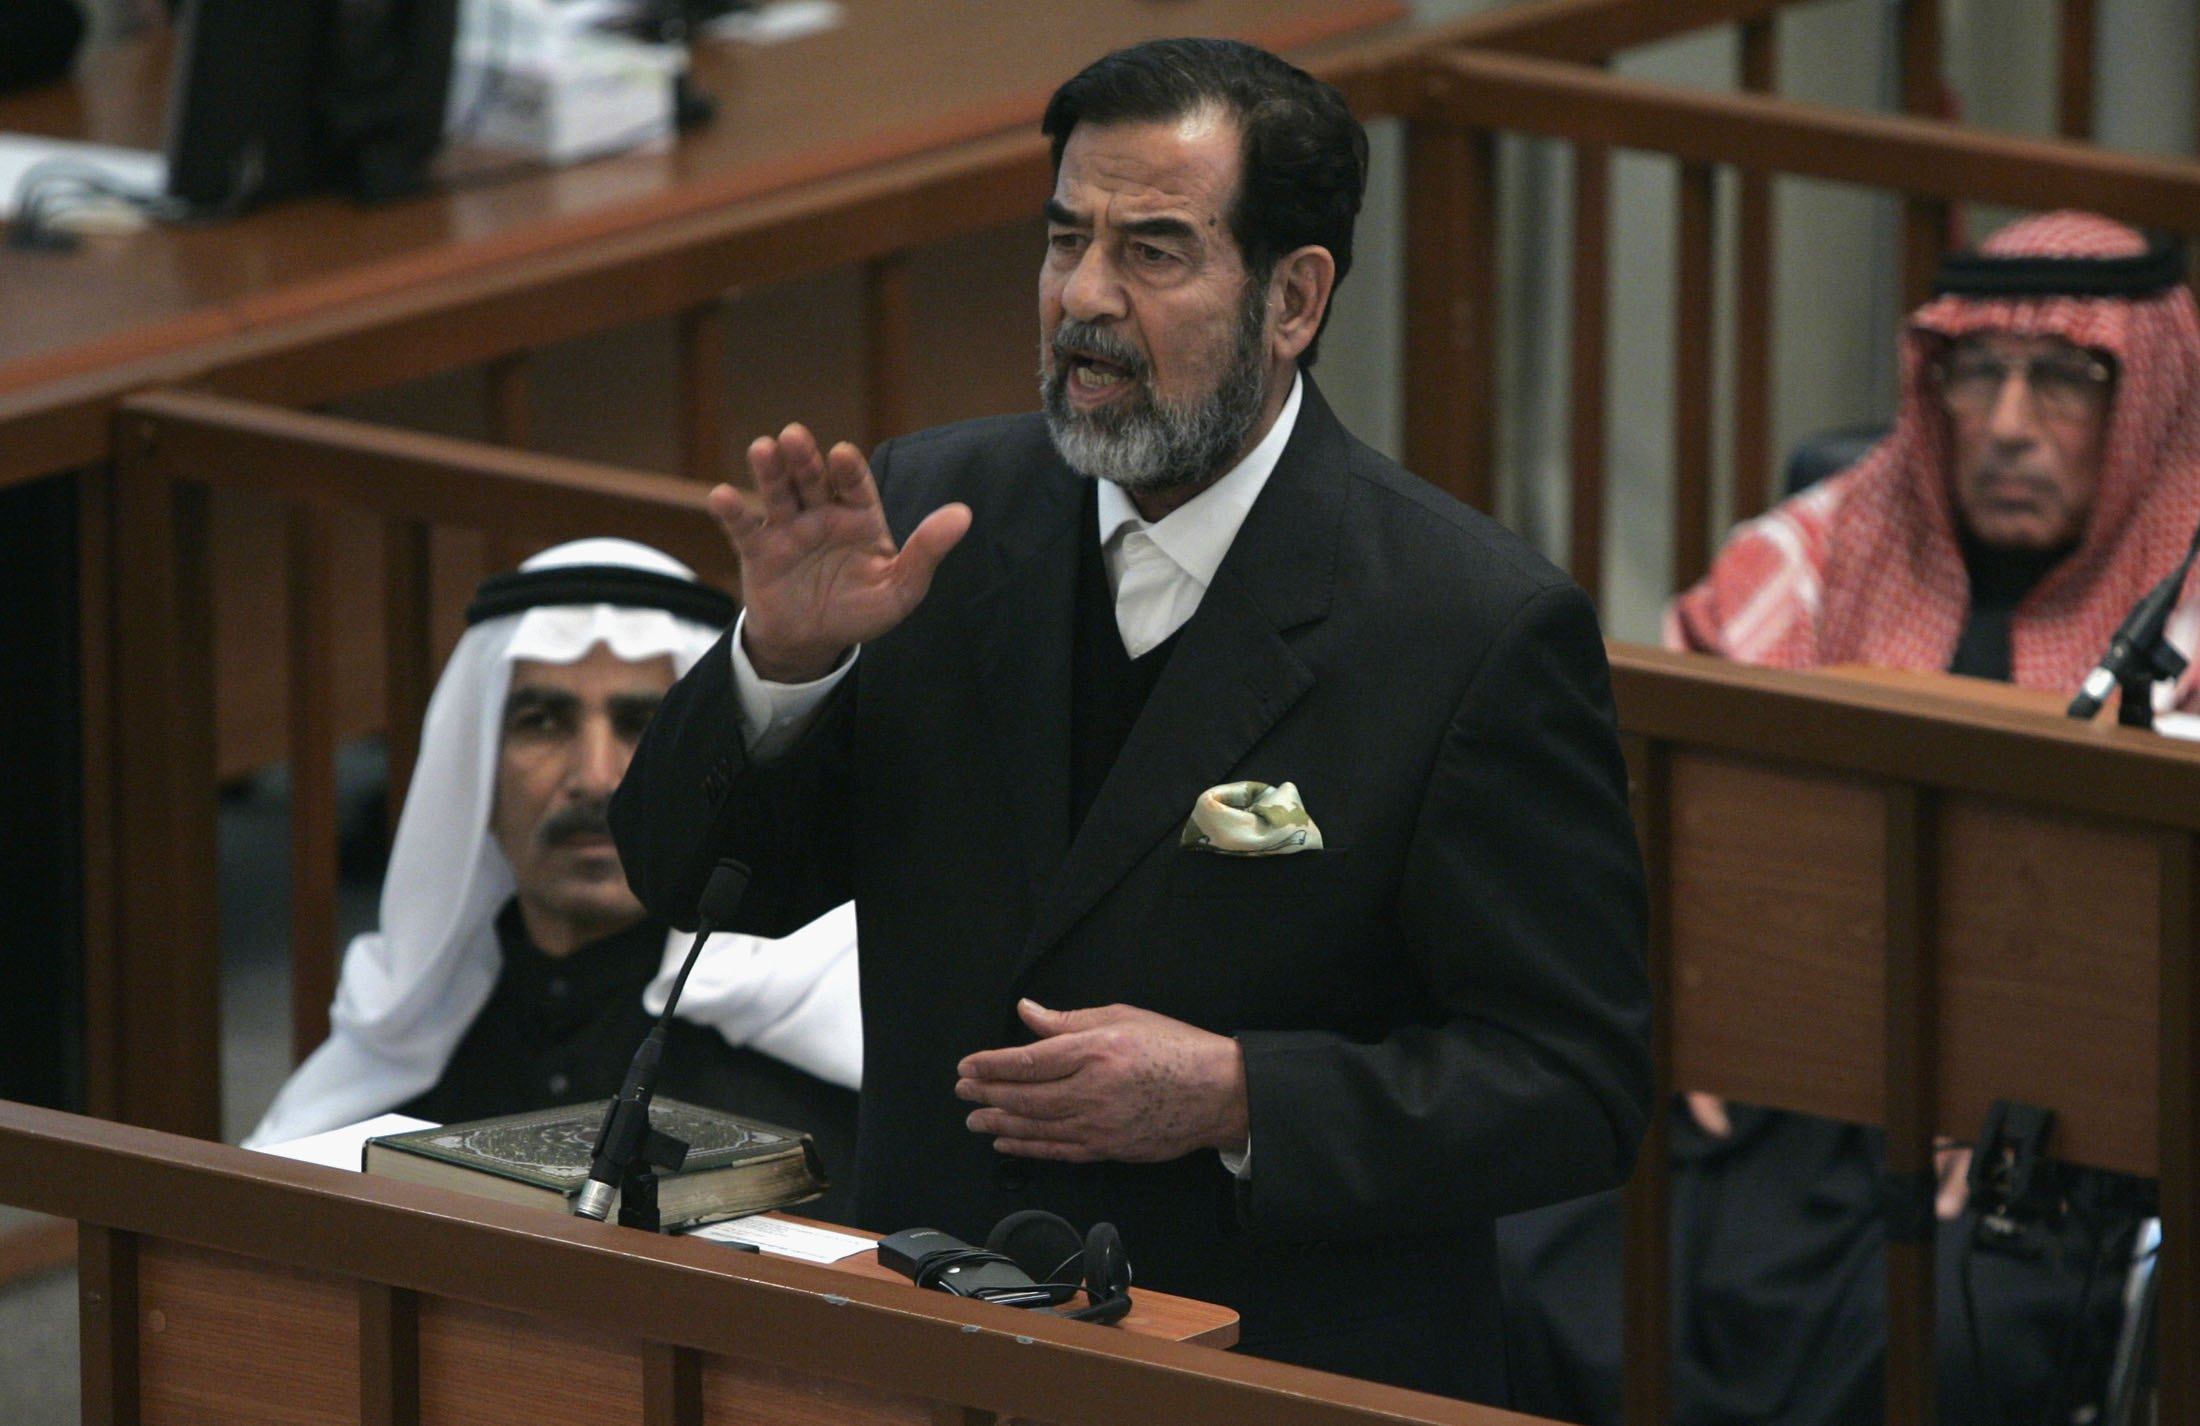 Former Iraqi president Saddam Hussein on trial in December 2008 in Baghdad, Iraq. (Photo by Nikola Solic-Pool/Getty Images)